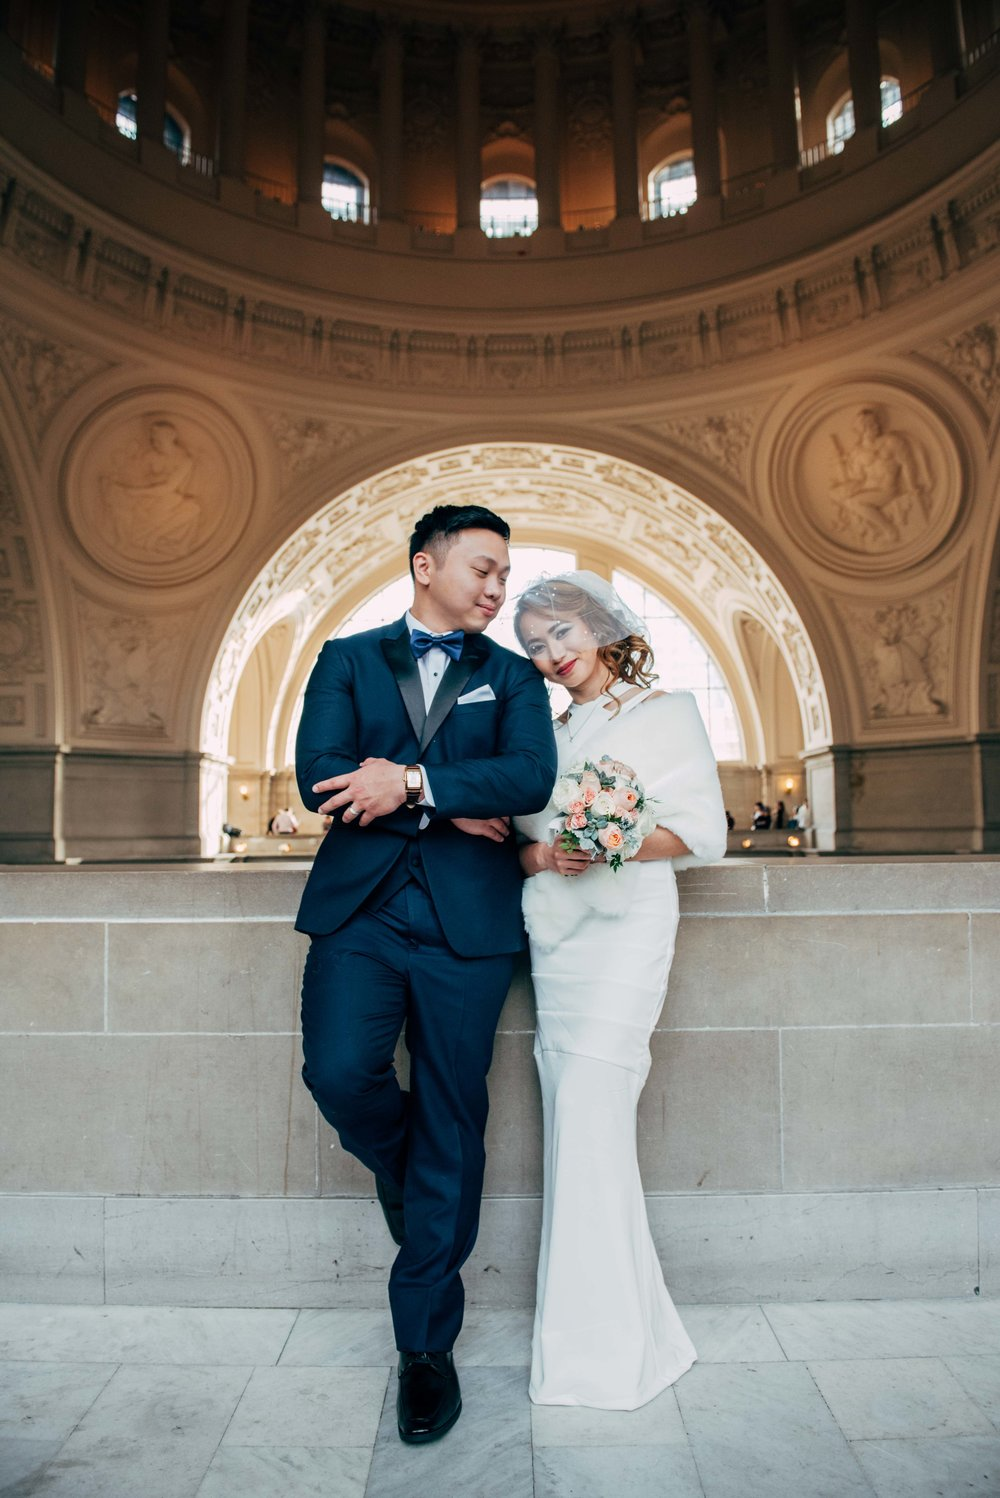 Johanna & Jeric    - Wedding: City Hall, San Francisco CA